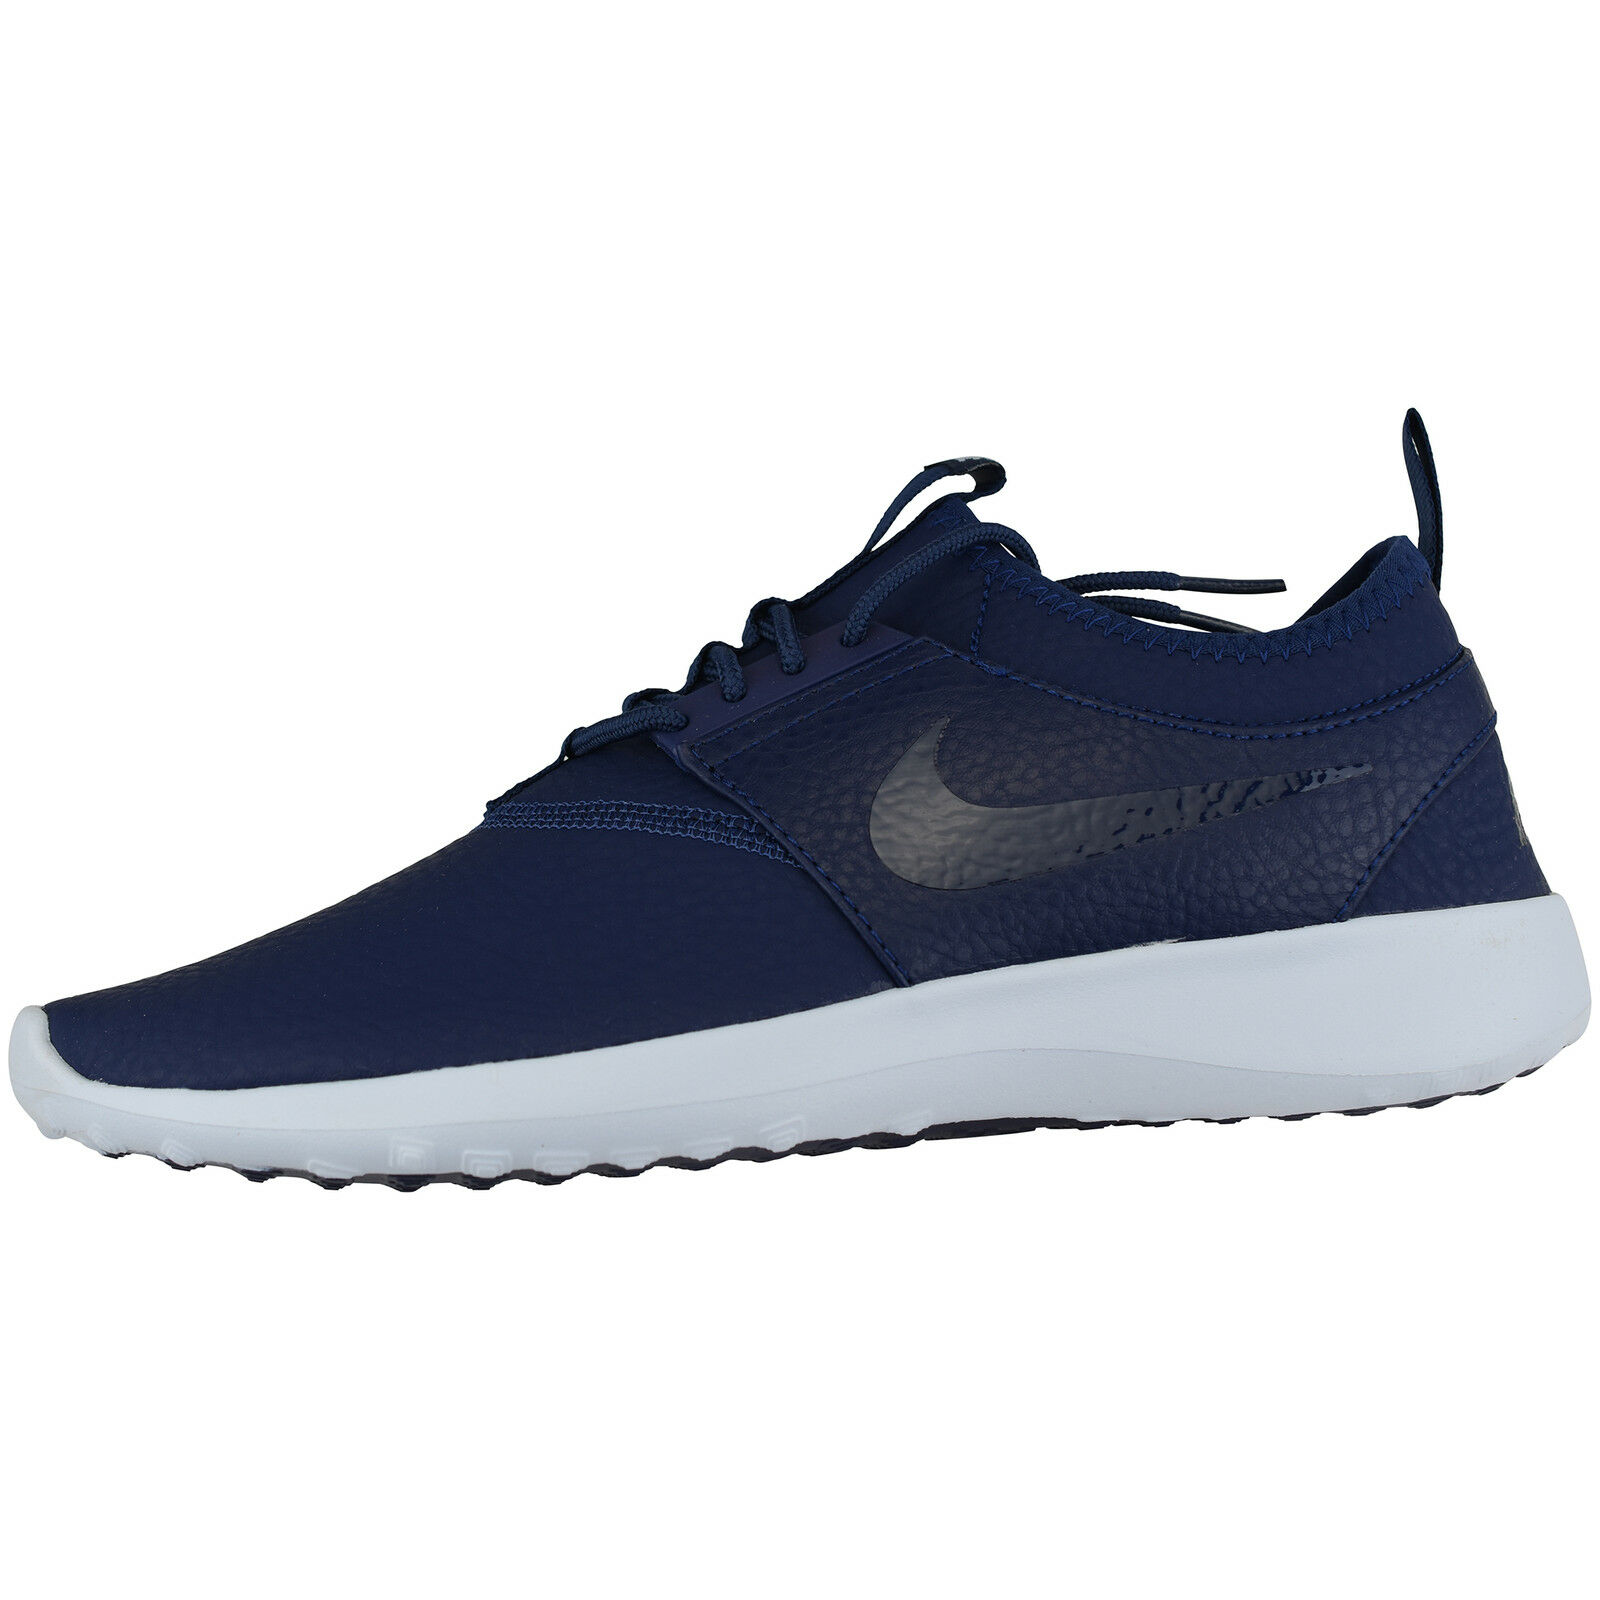 WMNS NIKE JUVENATE Shoes PRM 844973-400 Lifestyle Running Shoes JUVENATE Casual Trainers 5a93bc